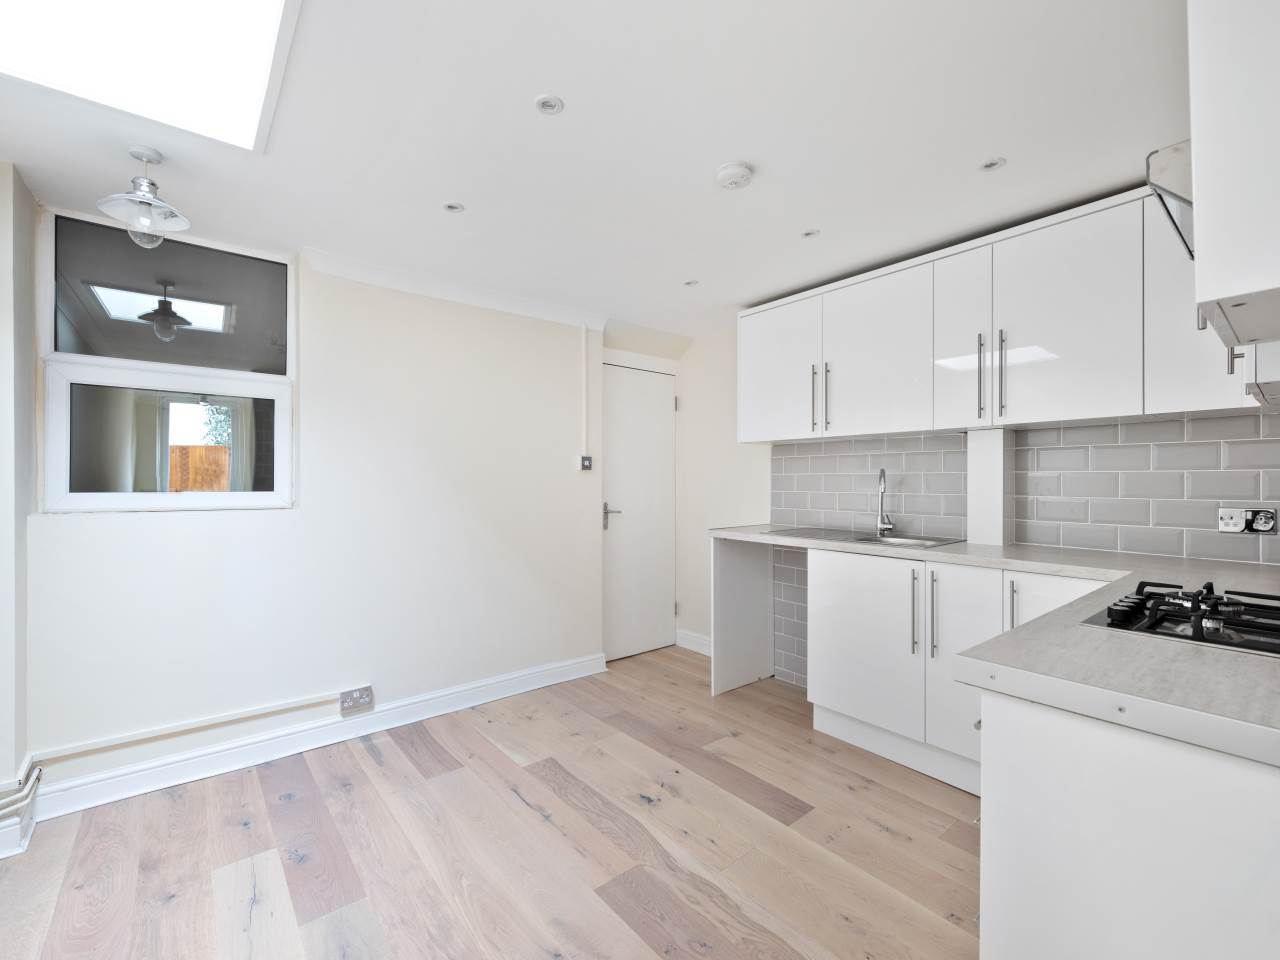 3 bed house for sale in Exning Road , Canning Town   - Property Image 7